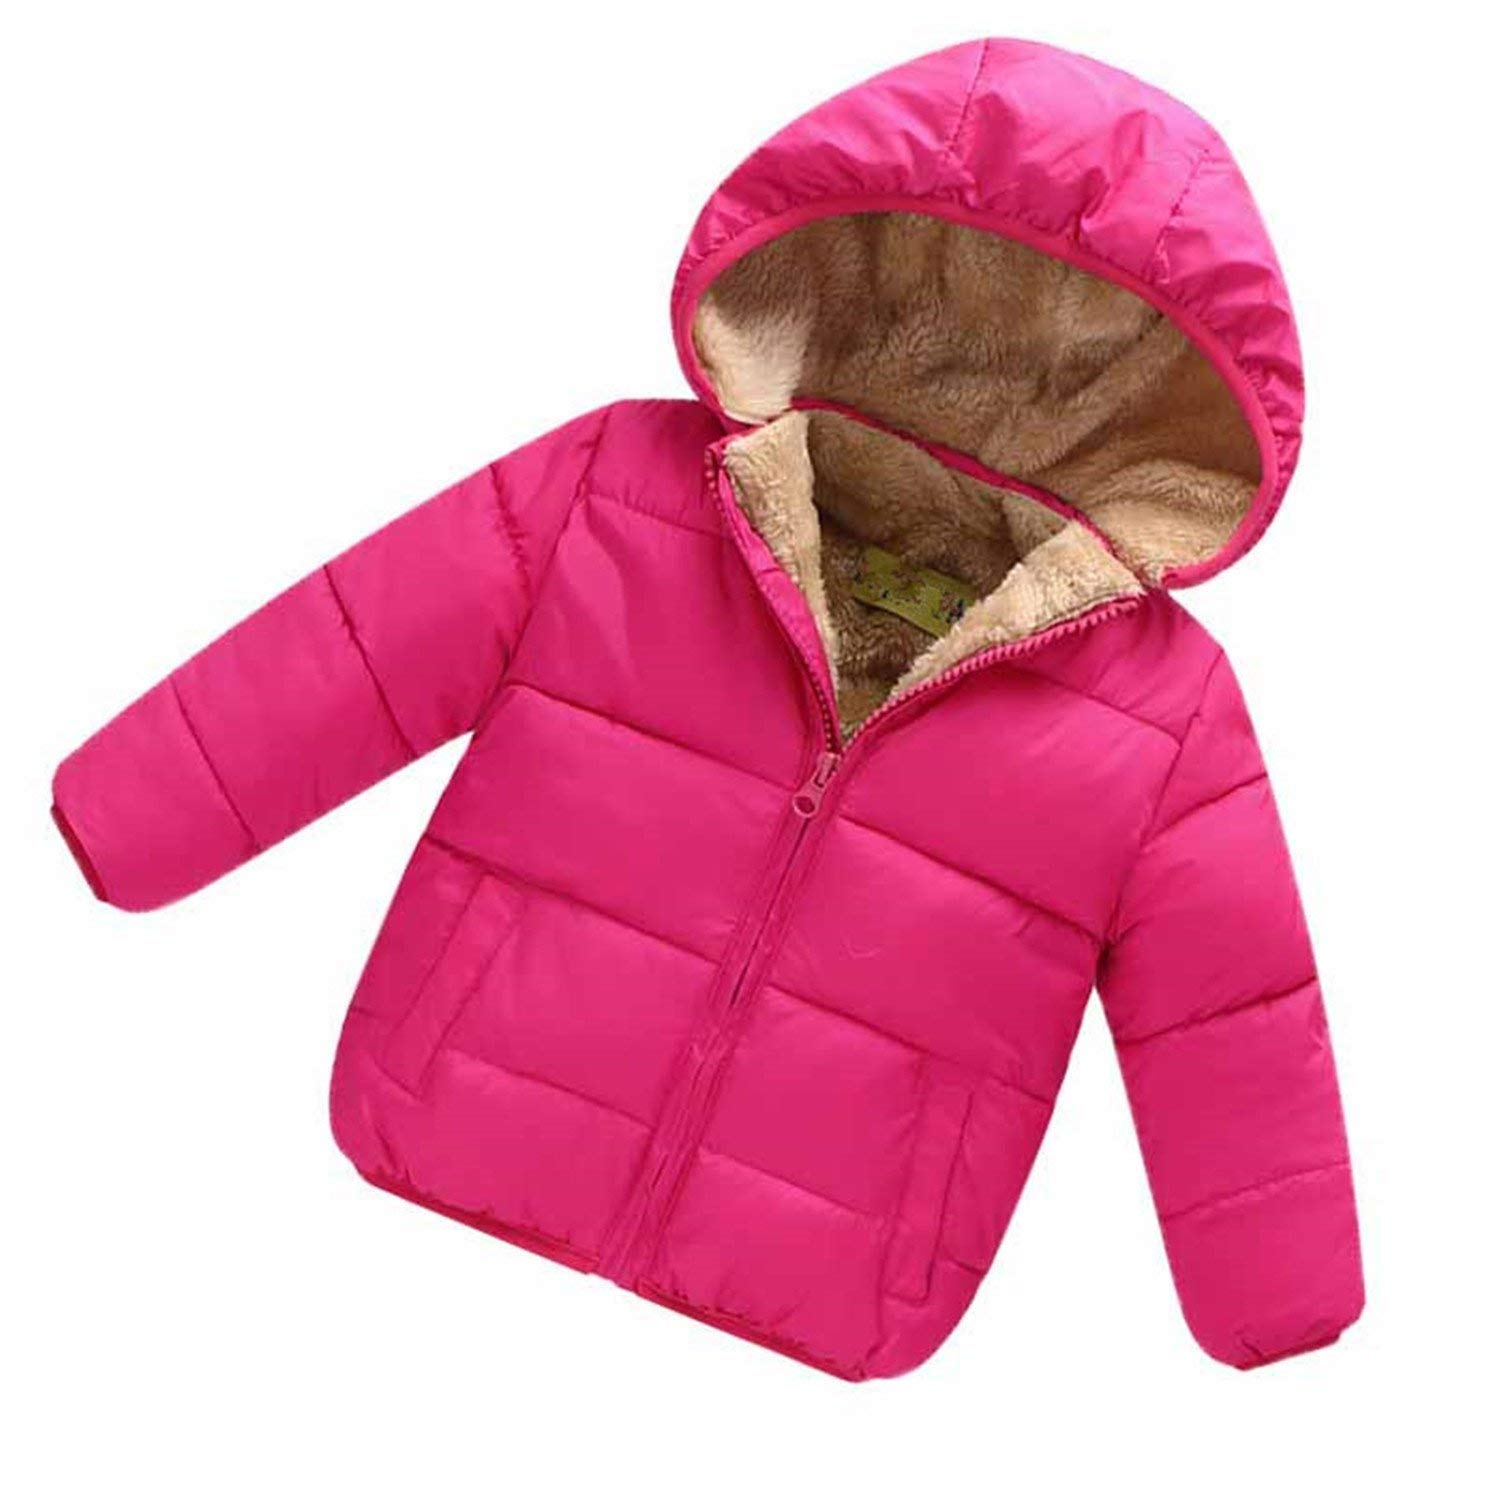 ffd3809a6 Samuel Roussel Baby Boys Snowsuit Cotton Girls Coats Jackets Baby Thicken  Winter Warm Outerwear Clothes